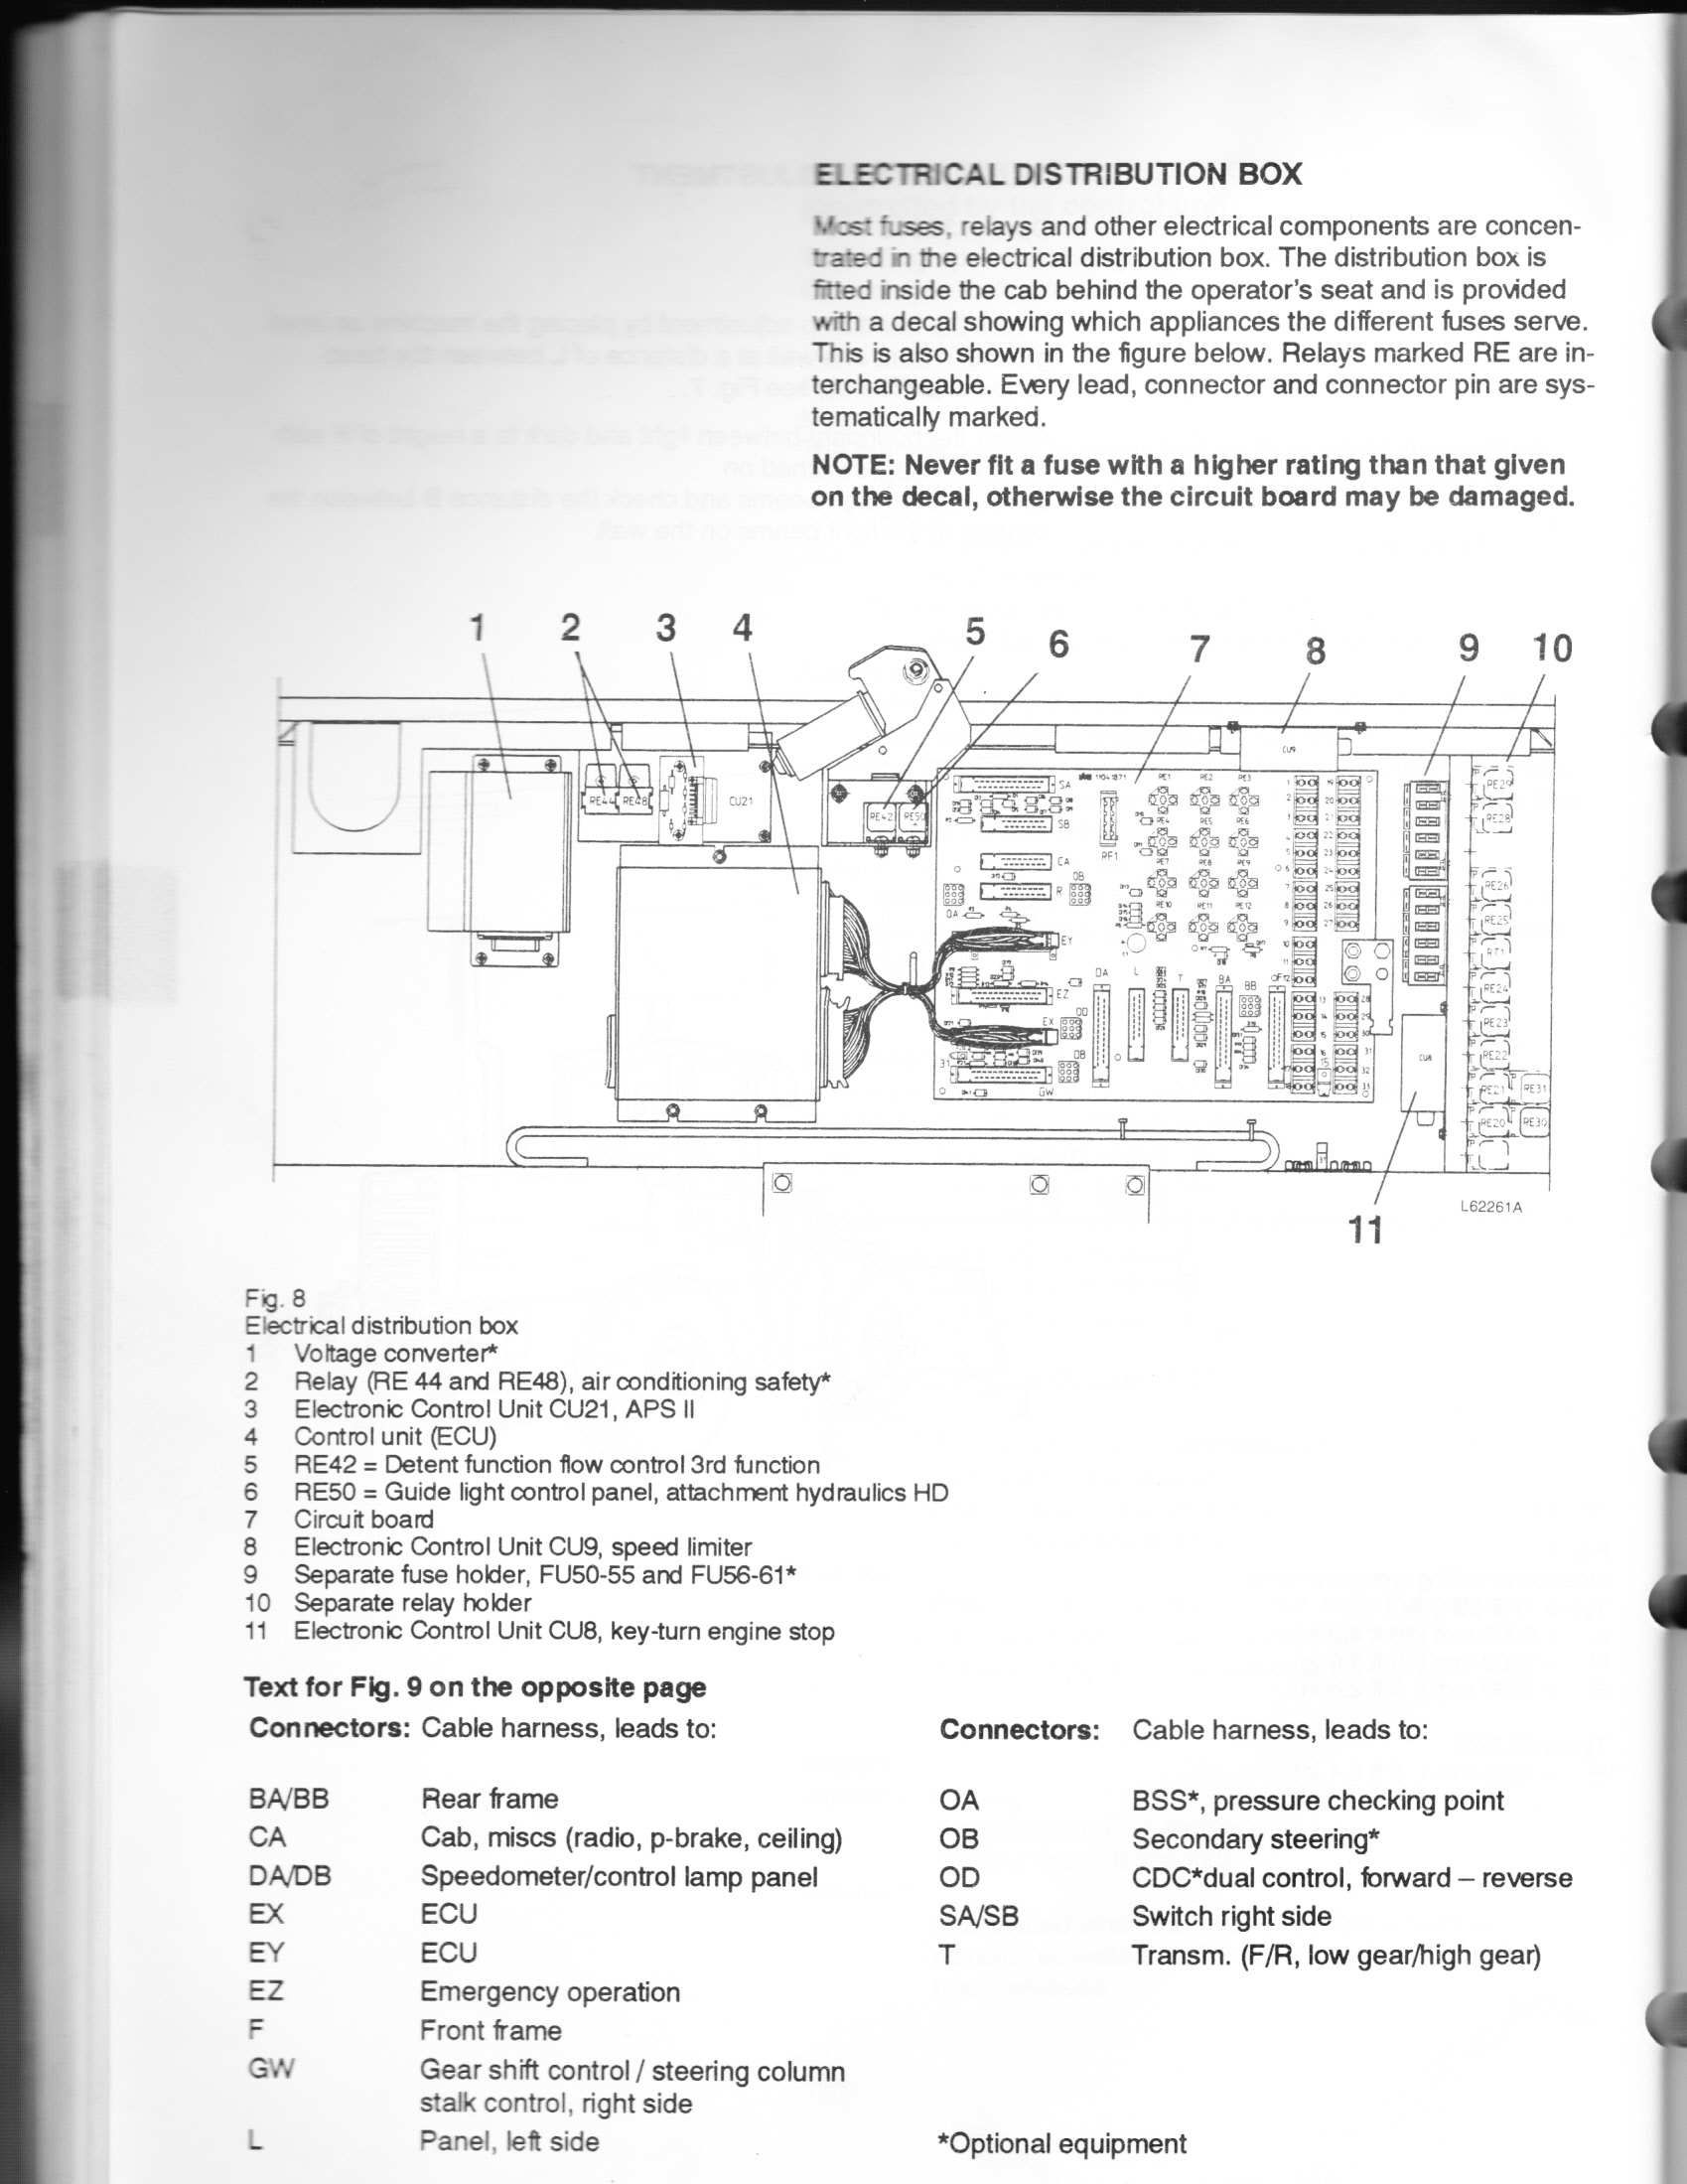 Volvo Ec15b Wiring Diagram - Wheel Horse 310 8 Wiring Diagram -  source-auto4.corolla.waystar.fr | Volvo Ec15b Wiring Diagram |  | Wiring Diagram Resource